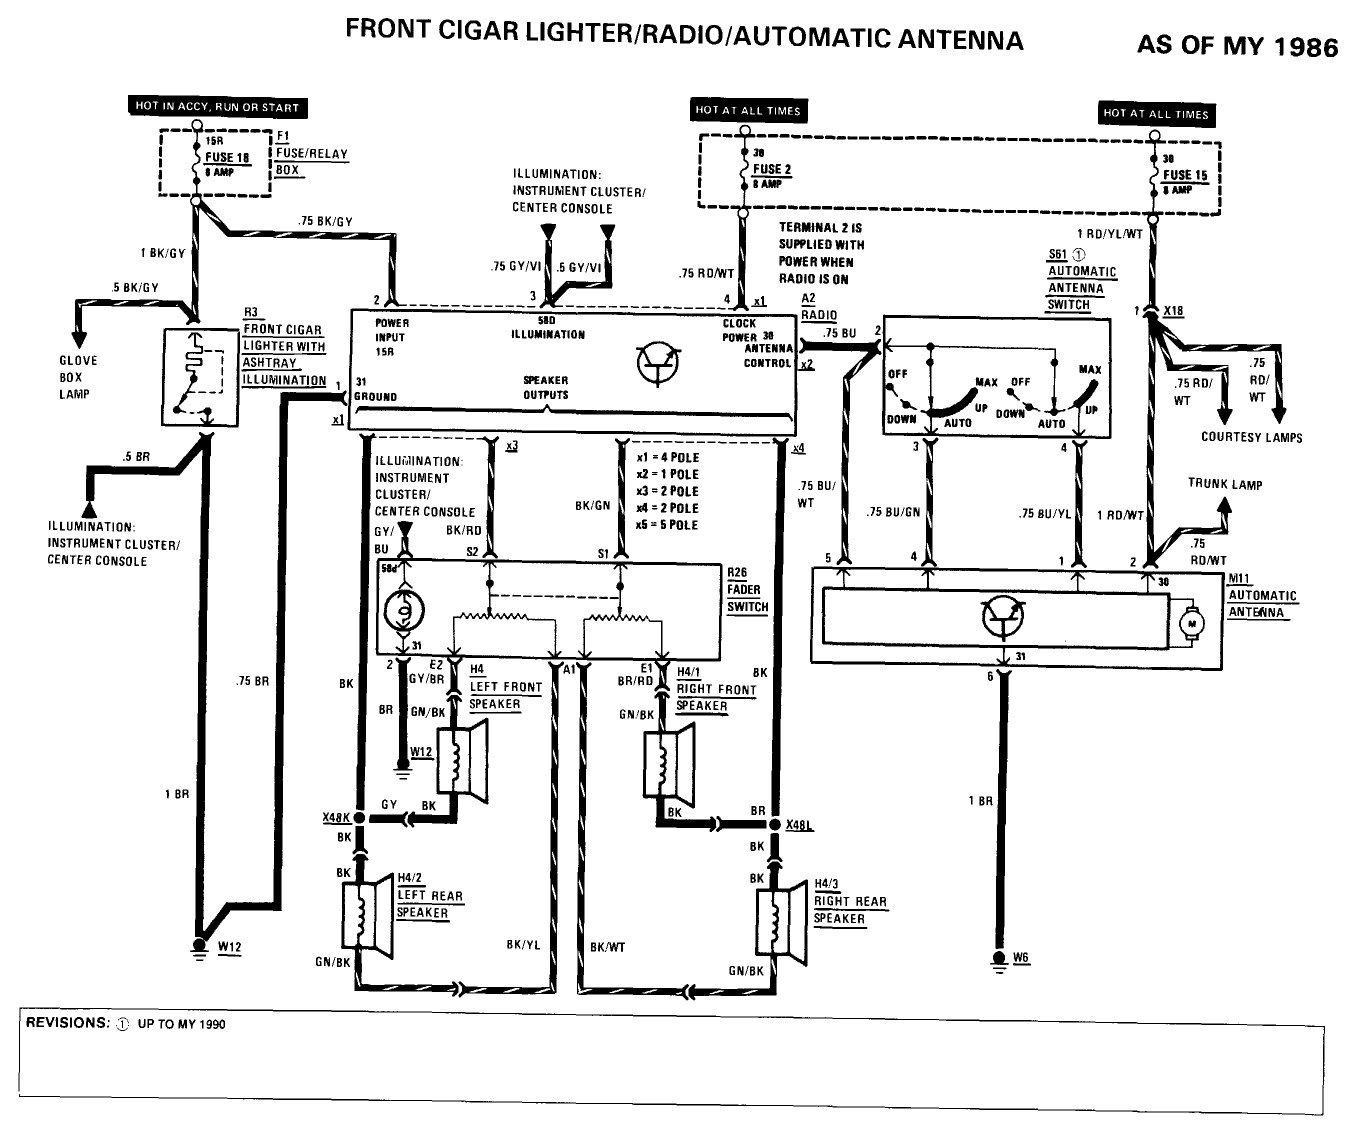 Sprint Booster Wiring Diagram Mercedes Trusted W124 Radio Download Diagrams U2022 For 2003